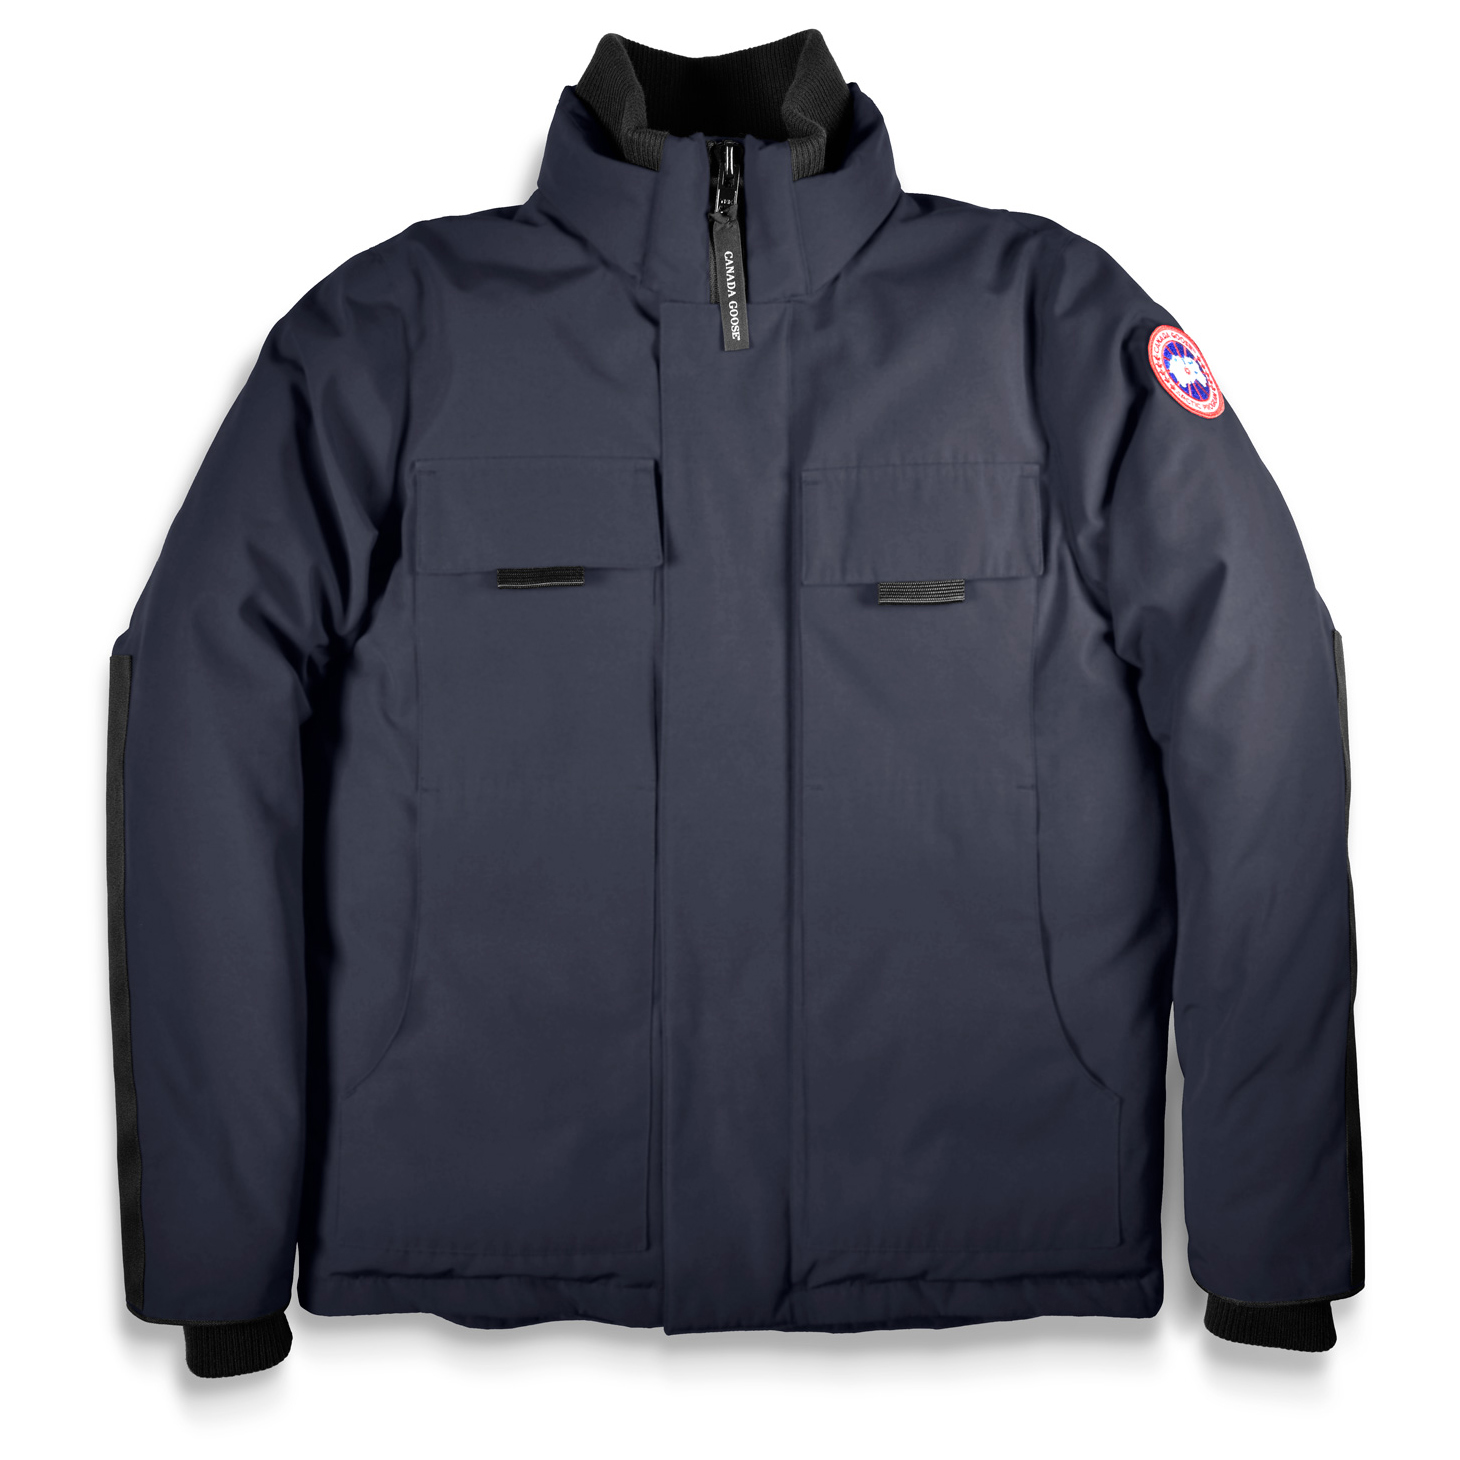 e86c1ed16f Canada Goose - Forester Jacket - Giacca in piumino - Black | XS